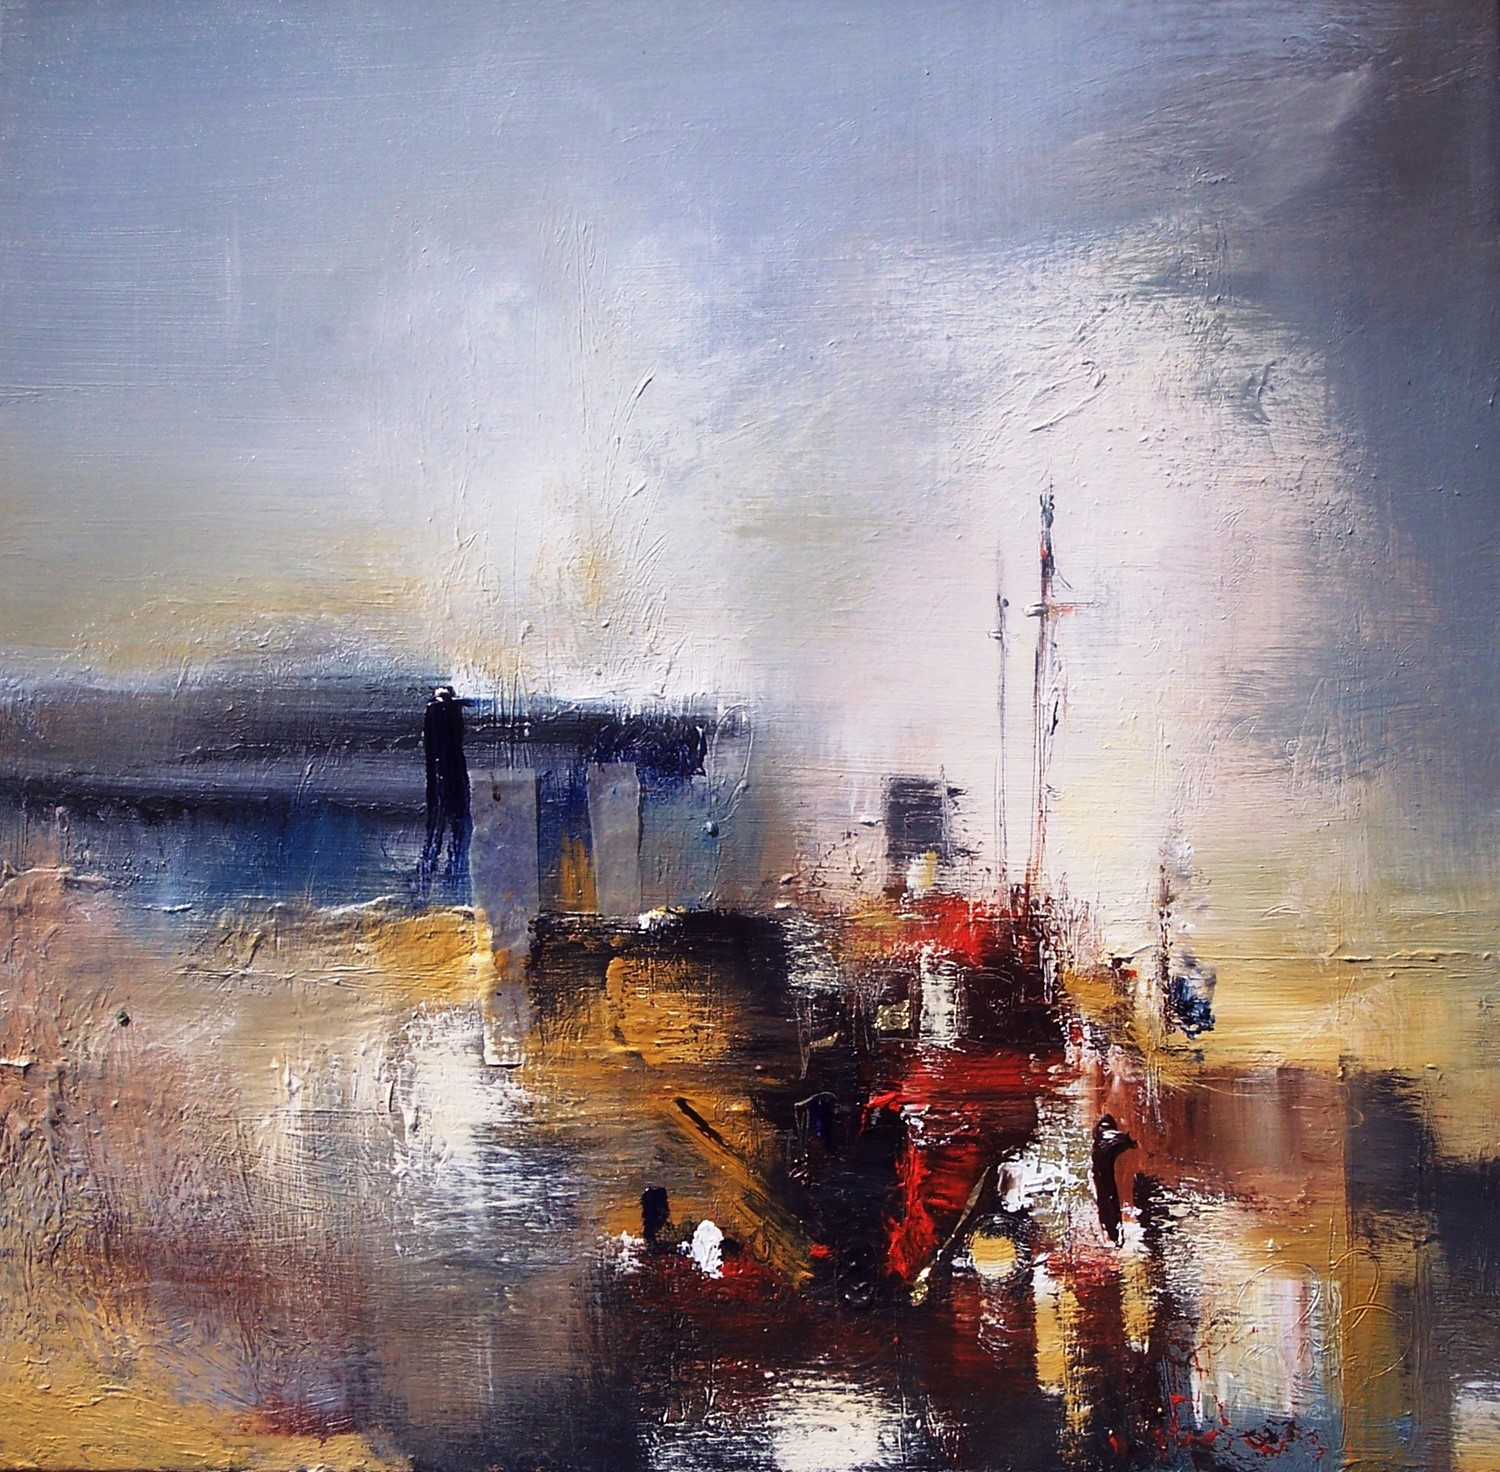 'Lingering at The Harbour' by artist Rosanne Barr